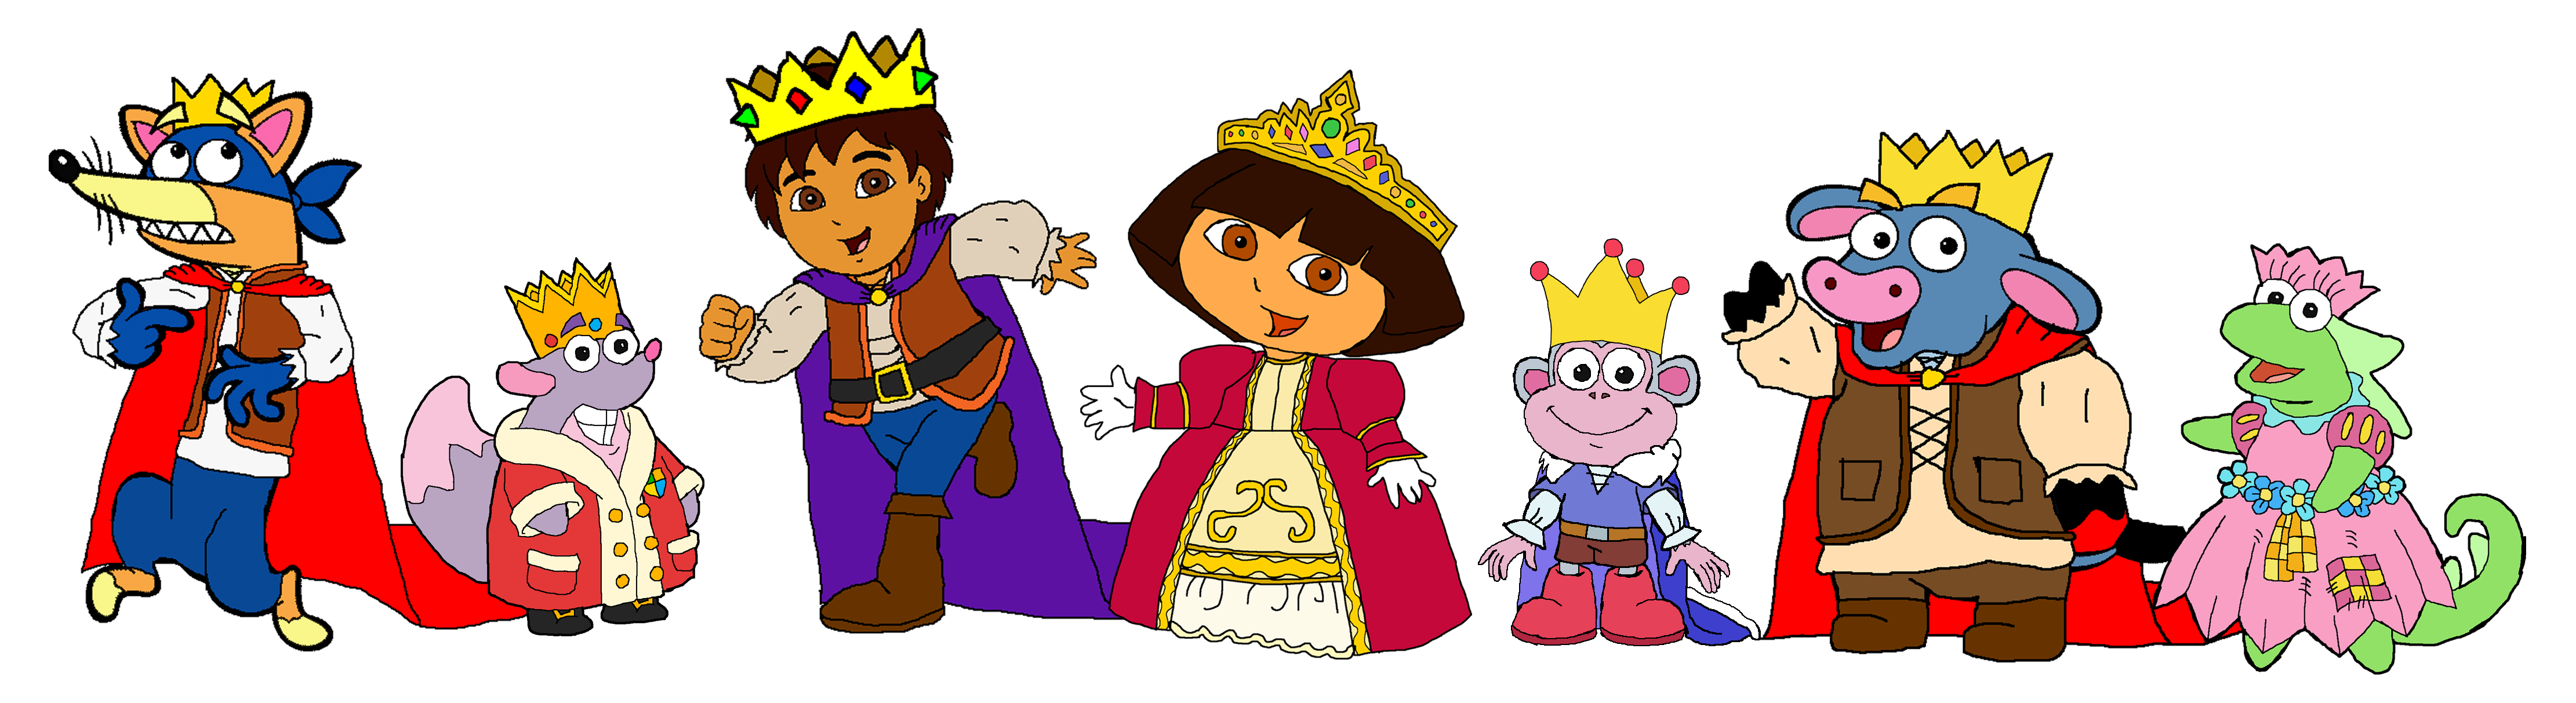 Dora and Diego  Medieval by KingLeonLionheart on DeviantArt